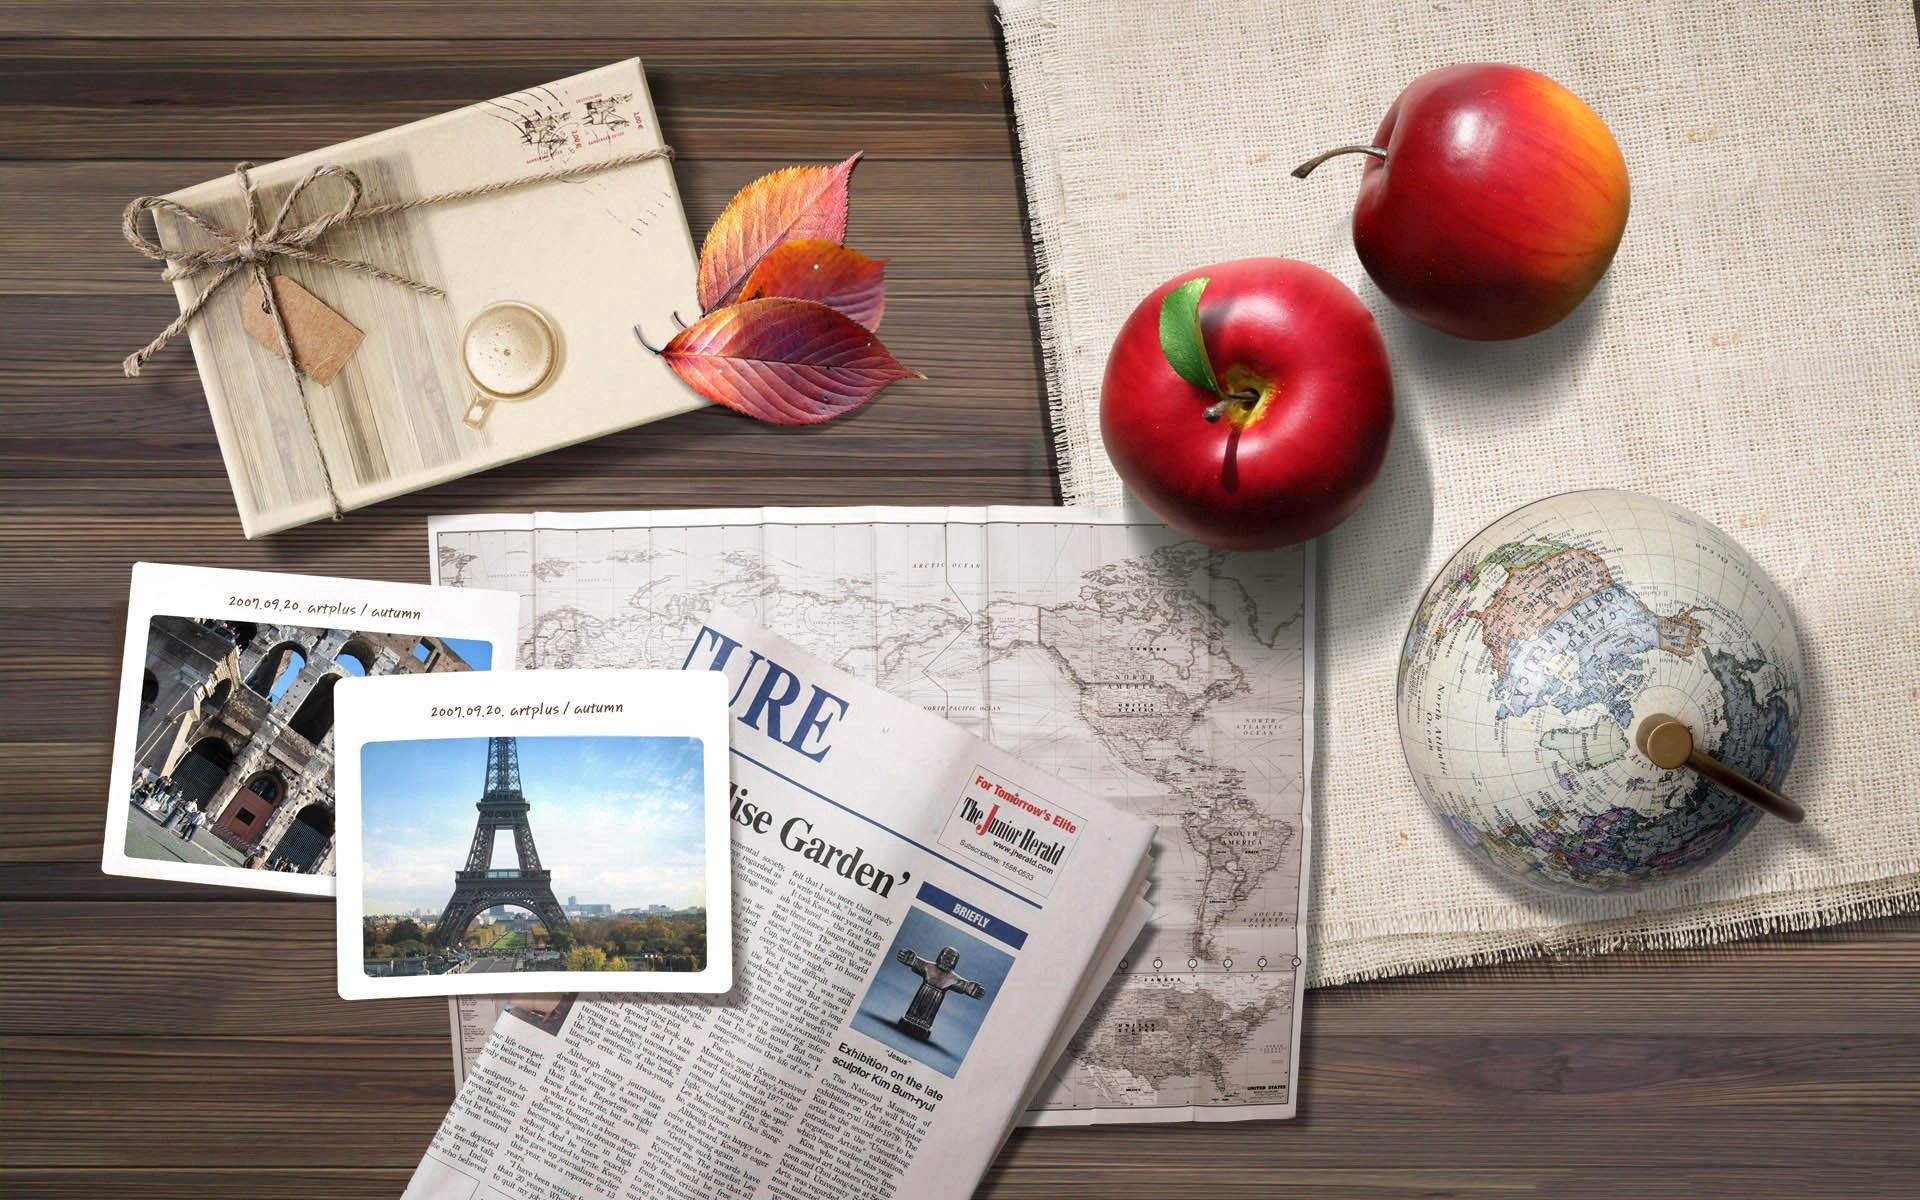 106867 download wallpaper Apple, Pictures, Miscellanea, Miscellaneous, Journey, Table, Photos, Photographs screensavers and pictures for free